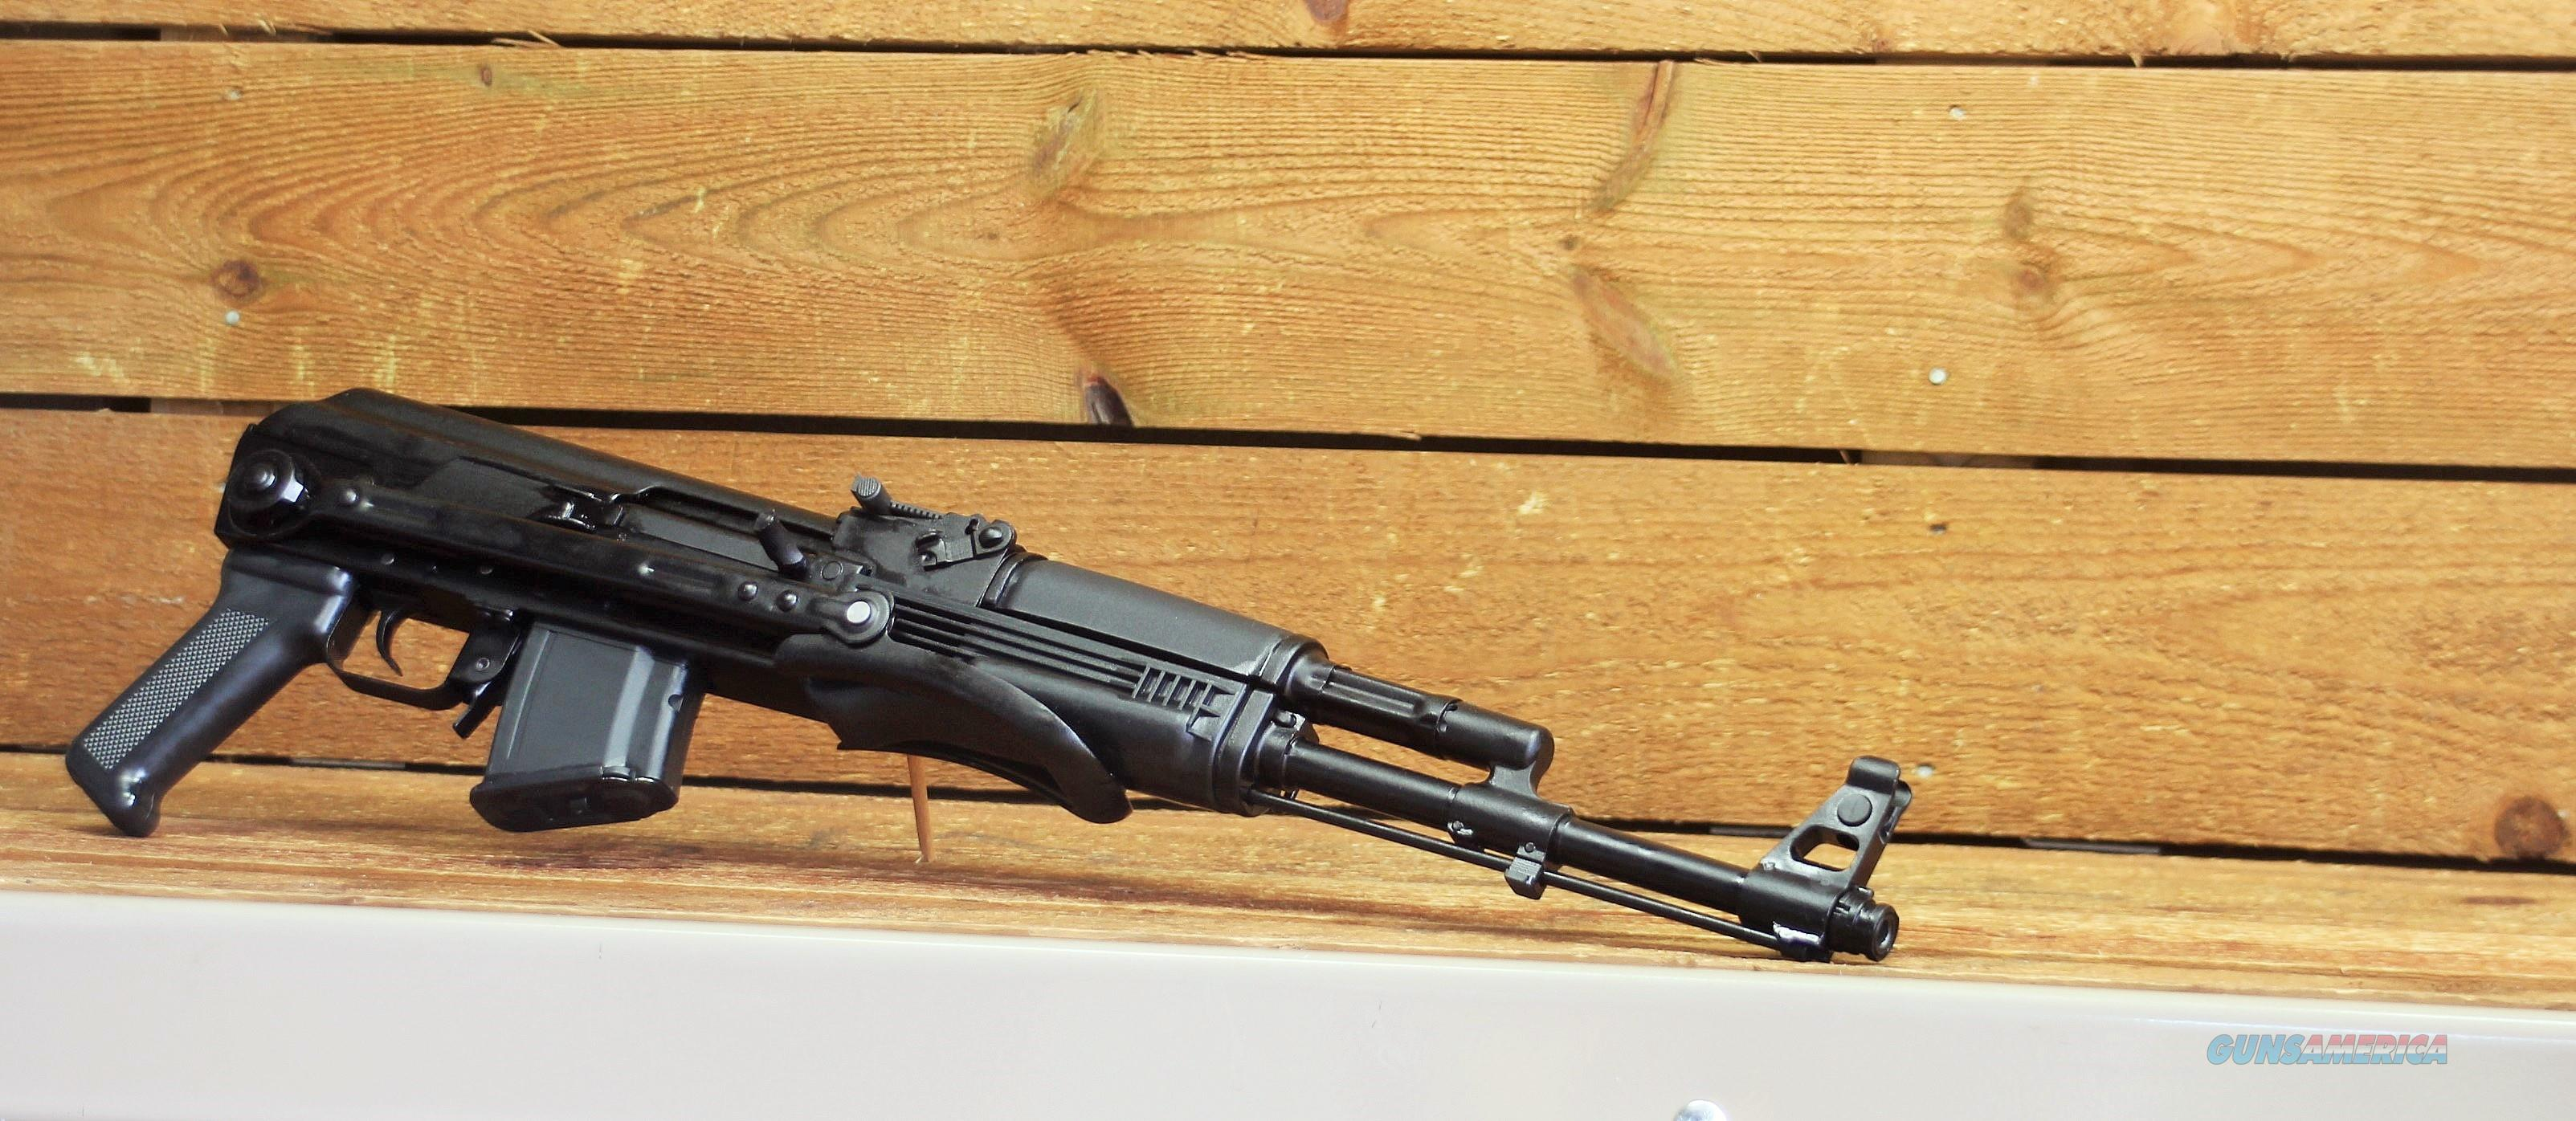 EASY PAY $77 DOWN LAYAWAY Arsenal AK-47 hammer forged Reinforced Milled Receiver this ARI AK47 is Under Folding for Storage or for fast moving in tight spaces 100 % new production parts & components SAM7UF-85 Removable Threaded muzzle SAM7  Guns > Rifles > AK-47 Rifles (and copies) > Folding Stock